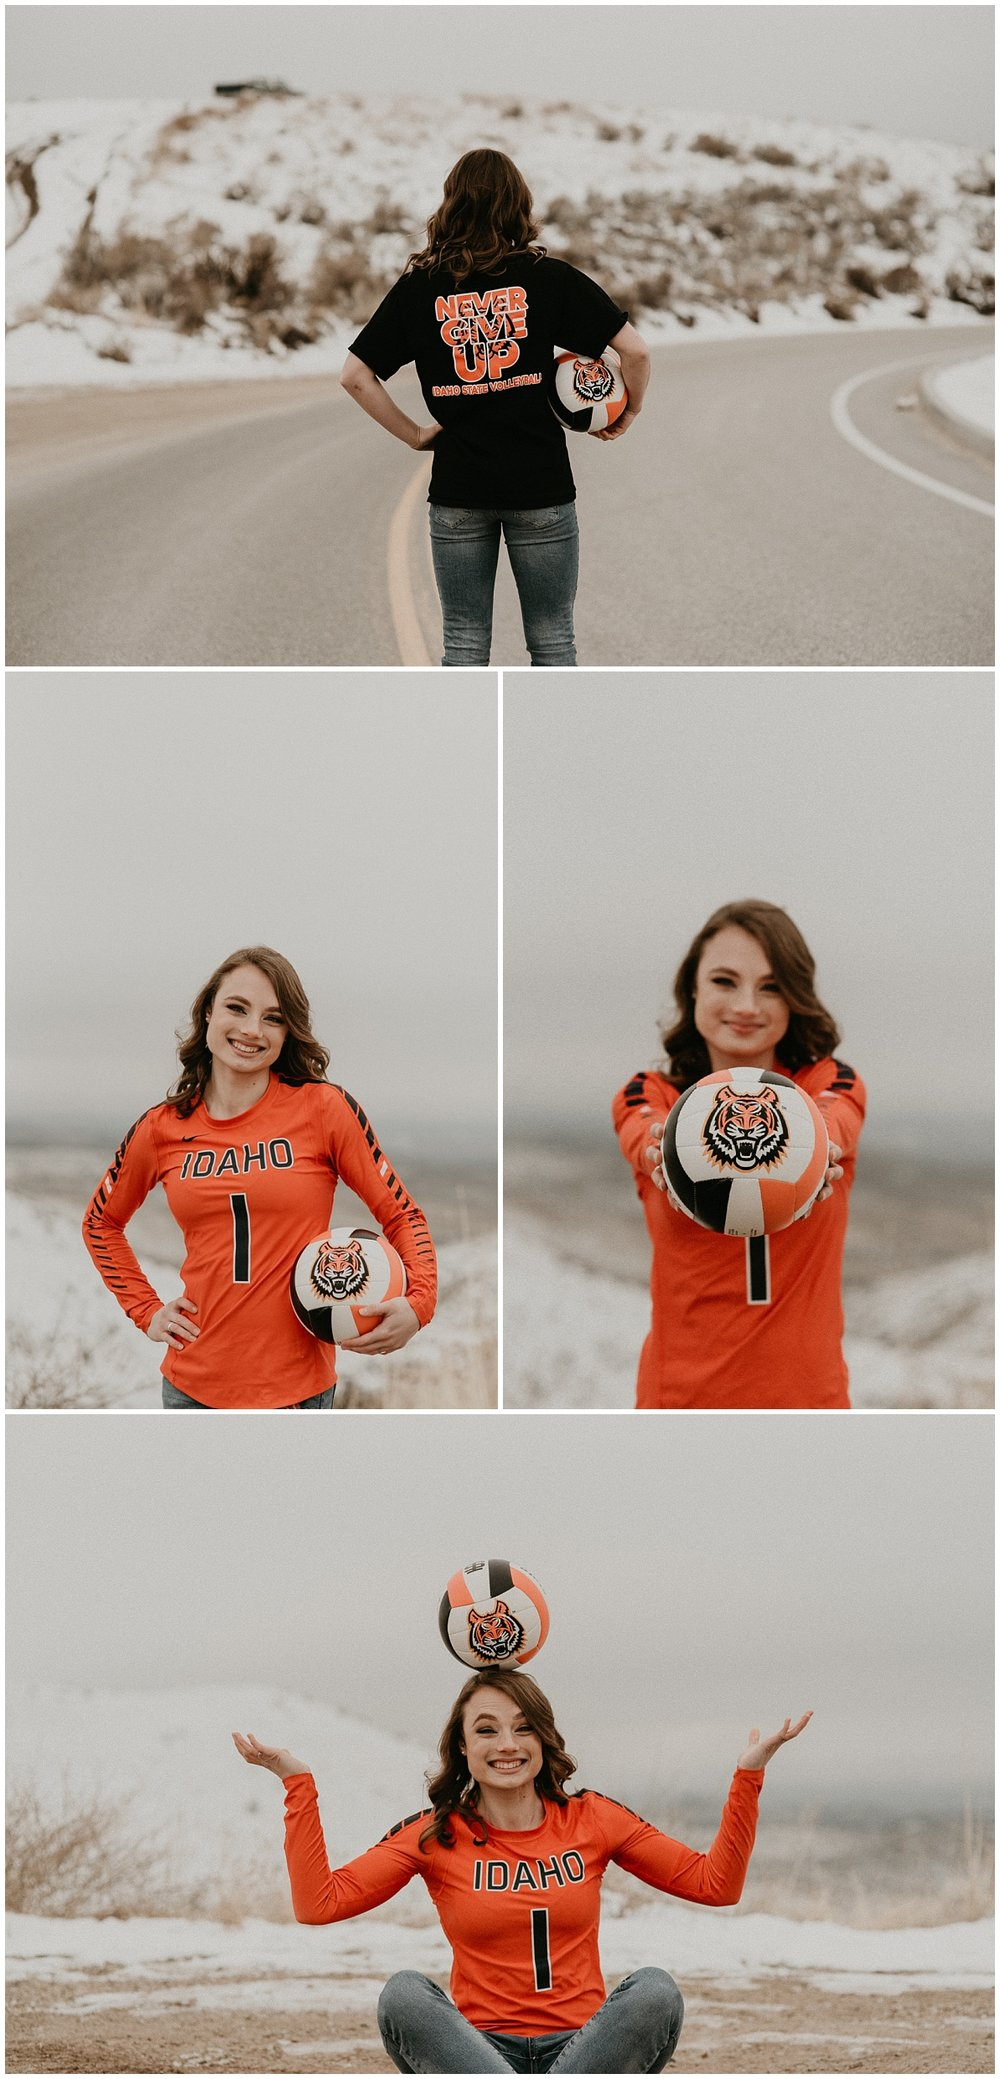 Boise Senior Photographer Meridian Photographers Makayla Madden Senior Pictures Graduation Volleyball Sports Never Give Up Motivation